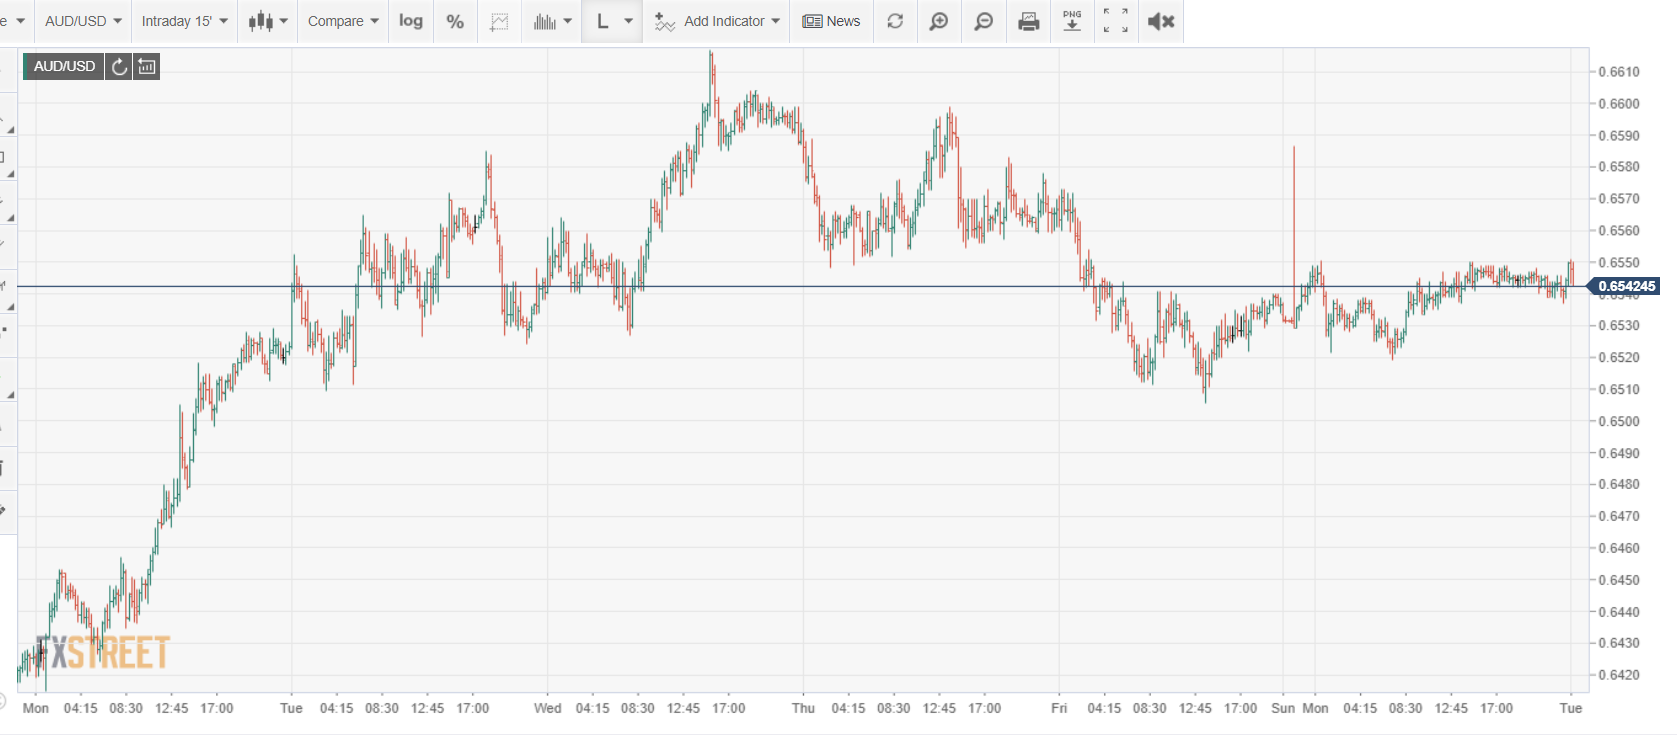 AUDUSD Chart - FXStreet - 26 May 2020